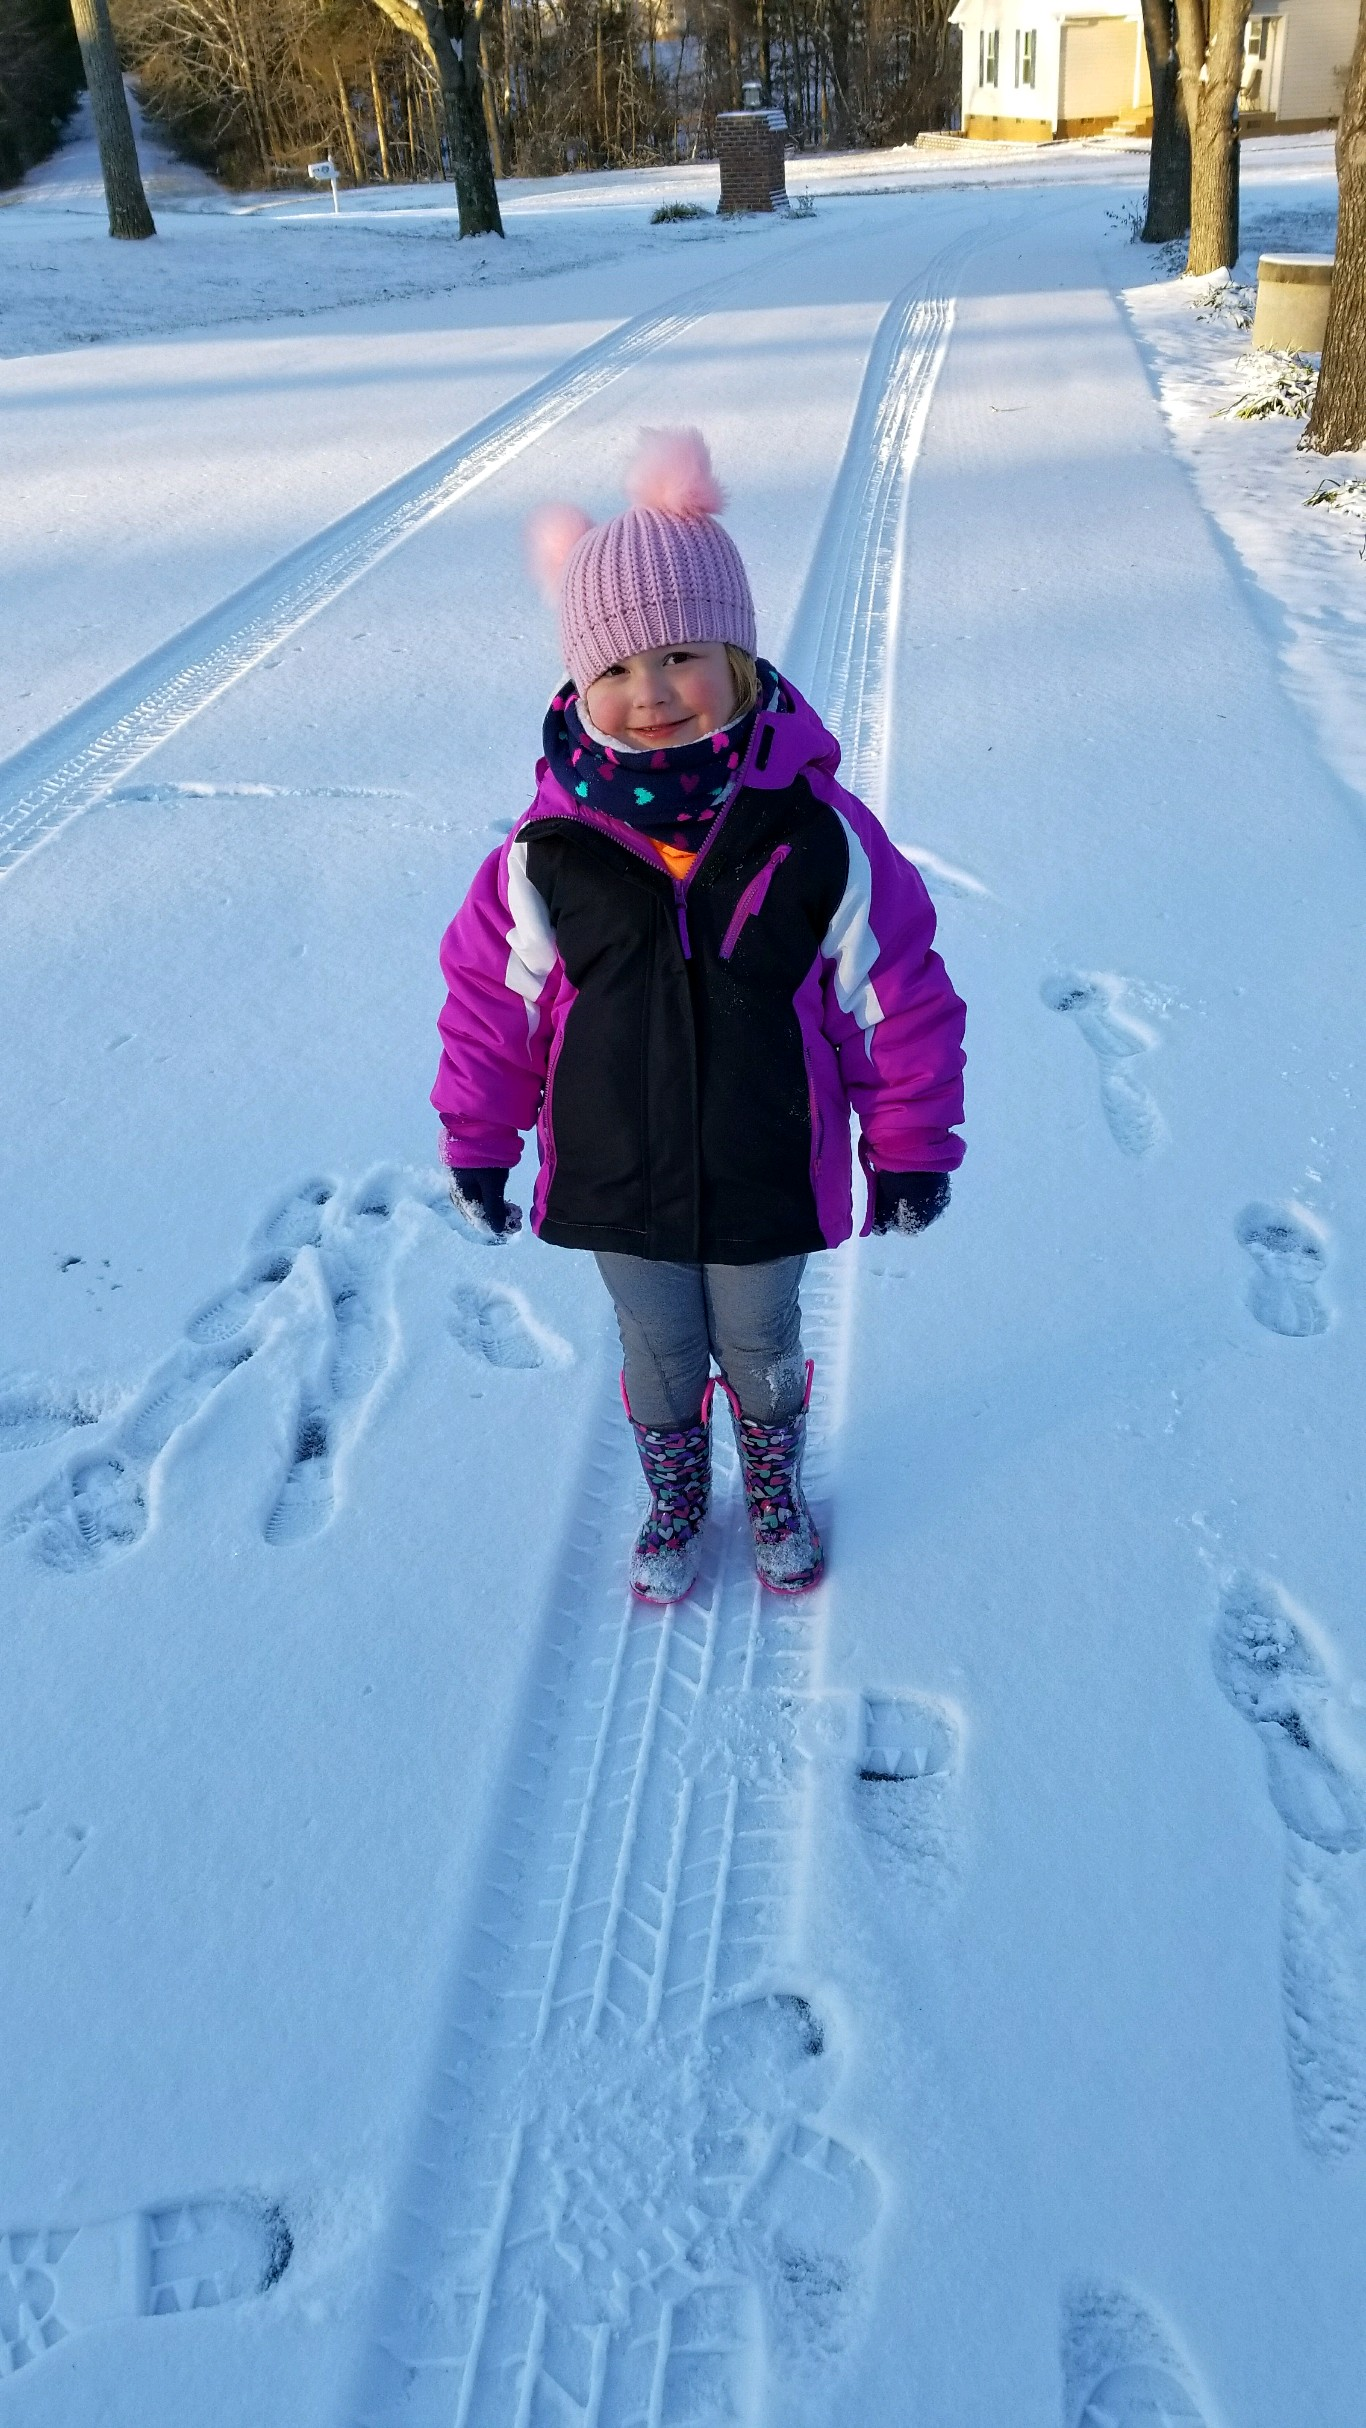 <div class='meta'><div class='origin-logo' data-origin='none'></div><span class='caption-text' data-credit='Credit: Marsha Rudd'>3-year-old Isla Williams enjoying the snow in Mebane</span></div>